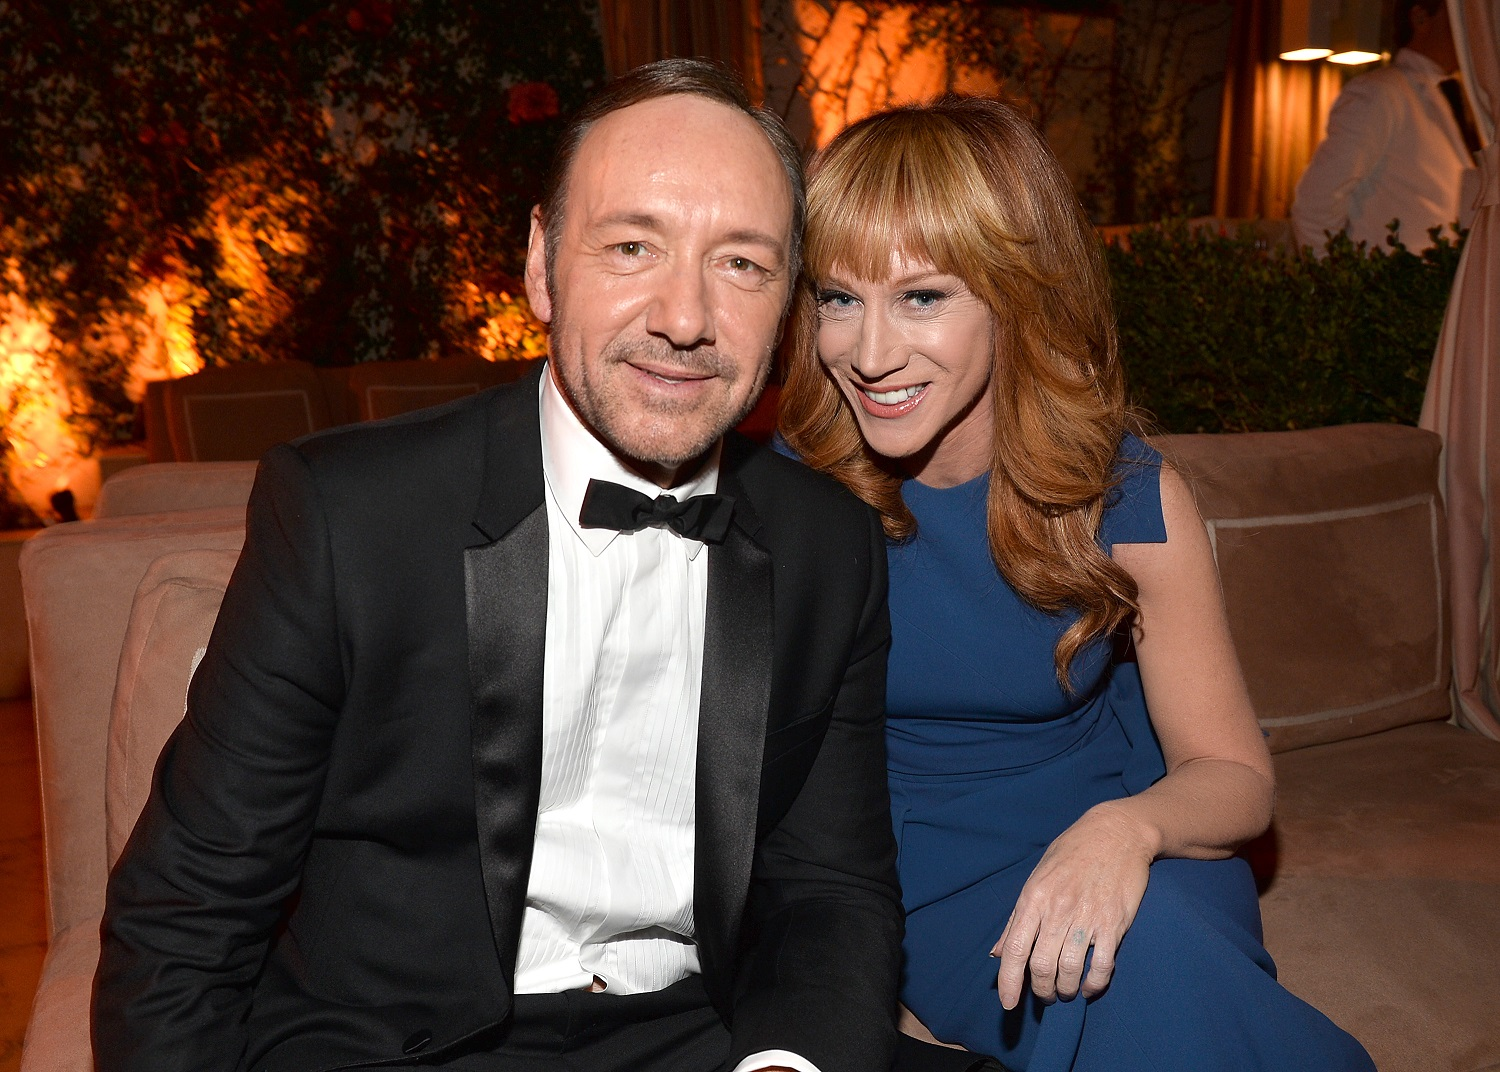 Kevin Spacey & Kathy Griffin